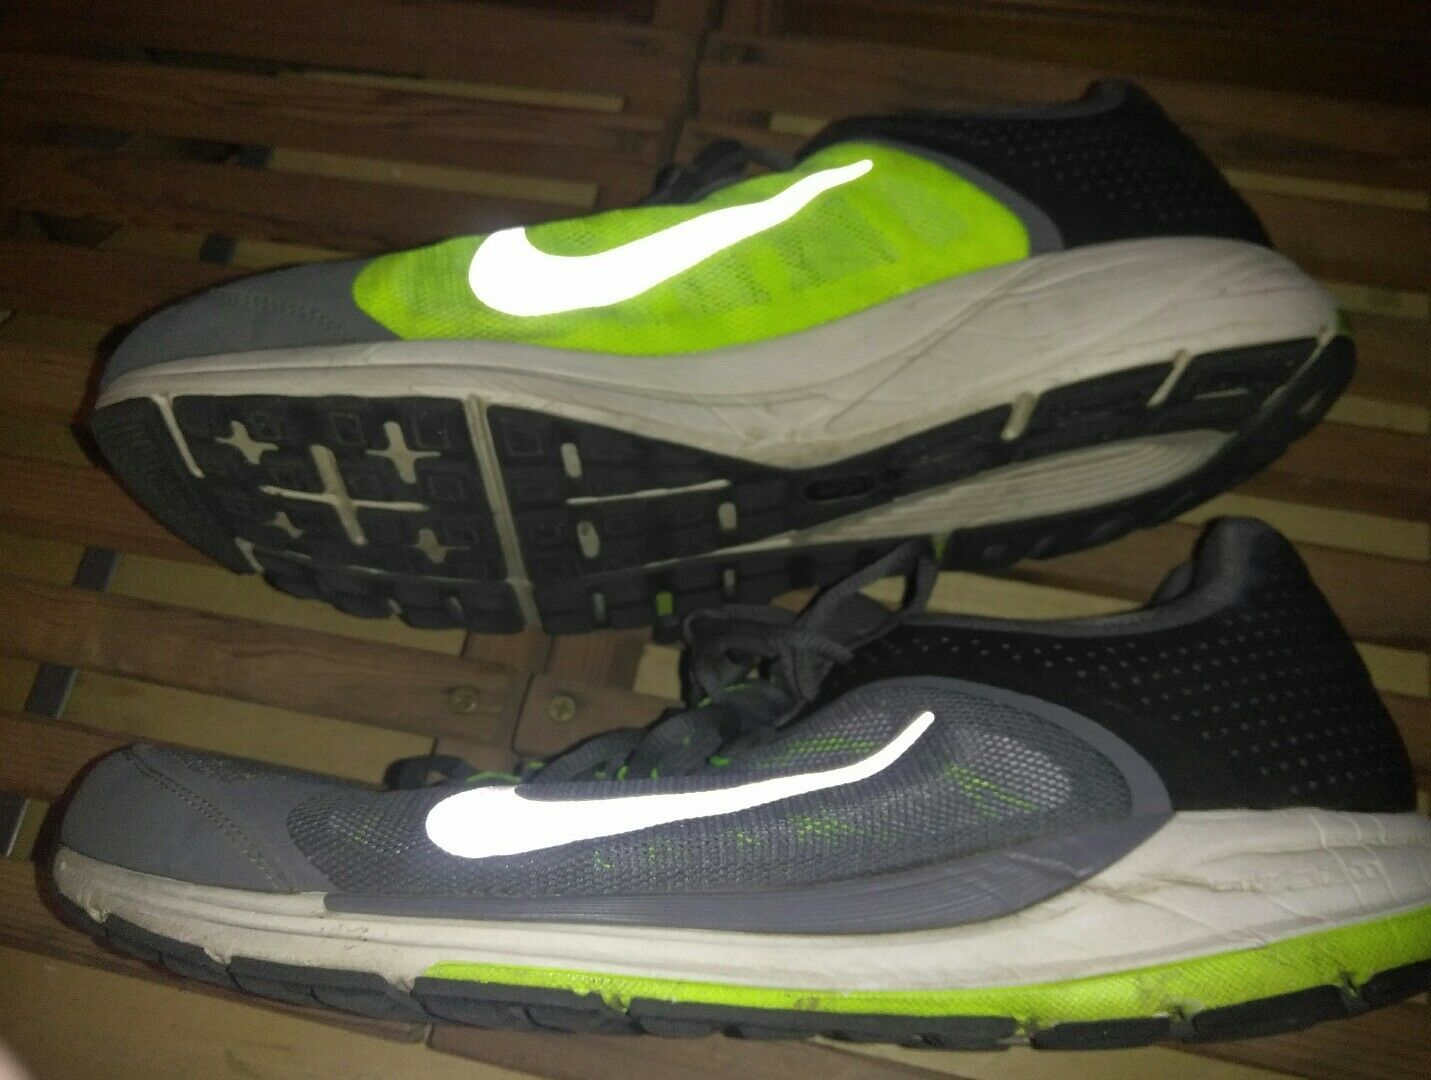 Nike ZM Zoom Elite+ 6 Running Shoes Men's Size Size Size US 14  554729-001 grey day glow ffe14f